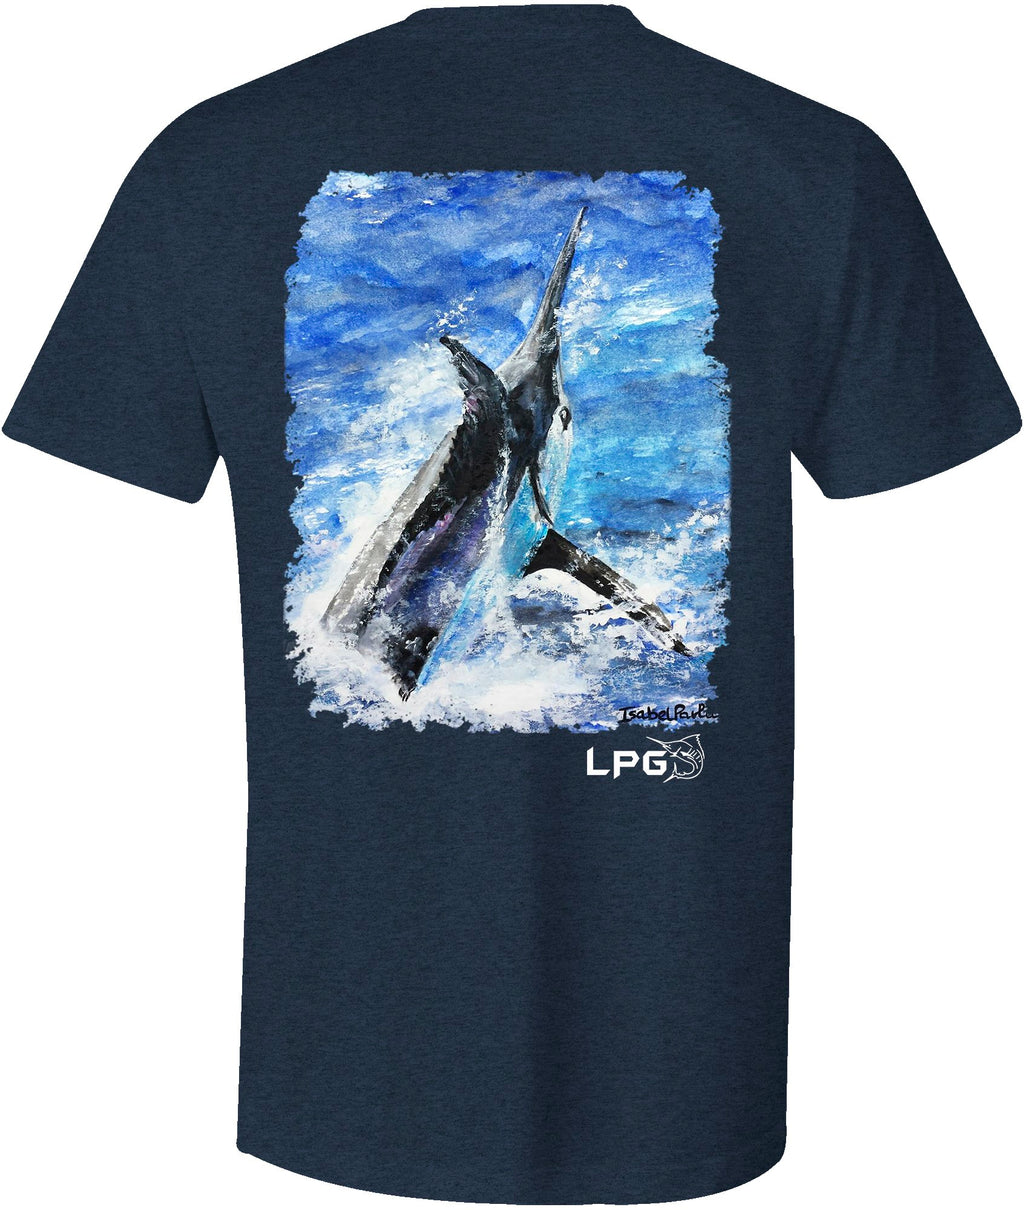 LPG Apparel Co. Grander Marlin Cotton Semi-fitted  T-Shirt - Lobo Performance Gear